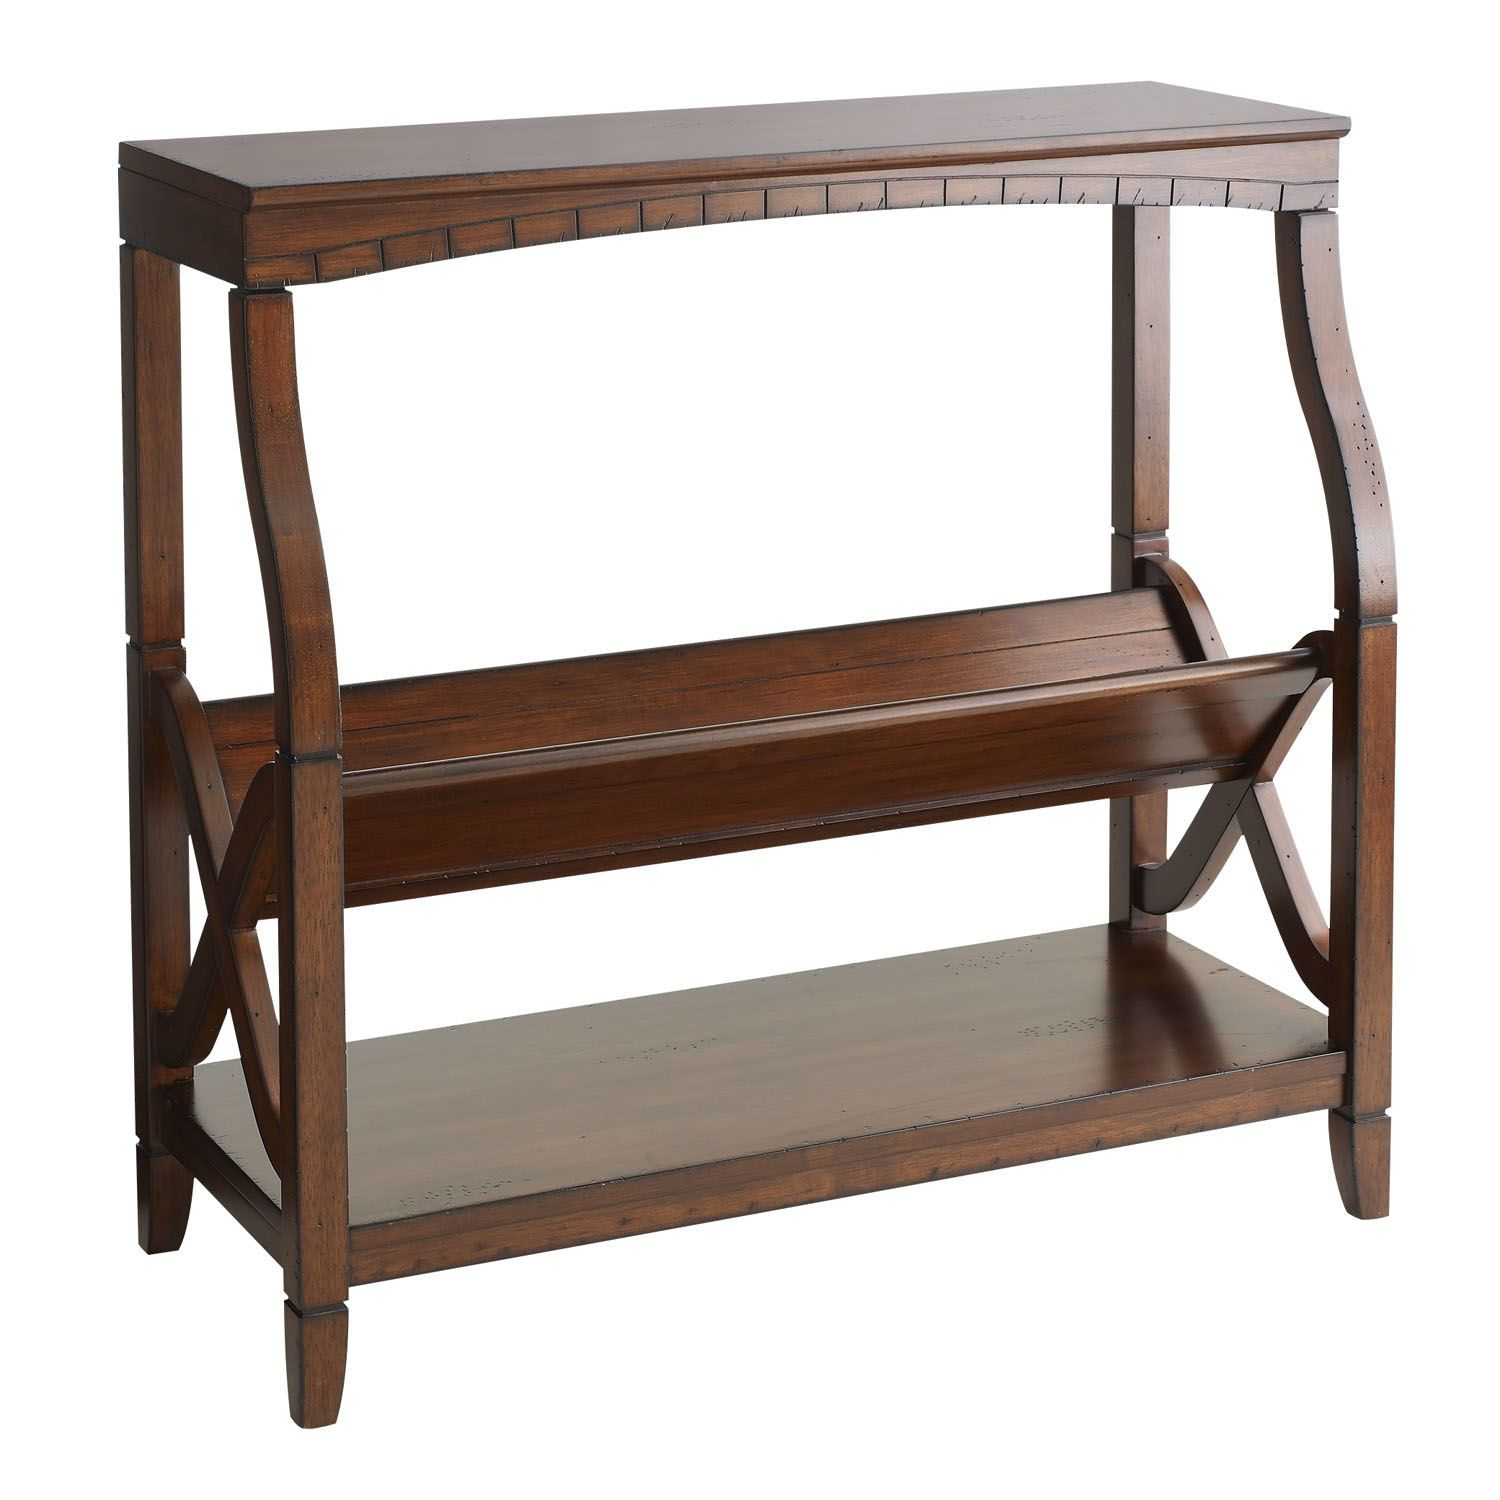 Bookseller Low Shelf   Mahogany Brown | Pier 1 Imports. Library BookshelvesHome  Office ...